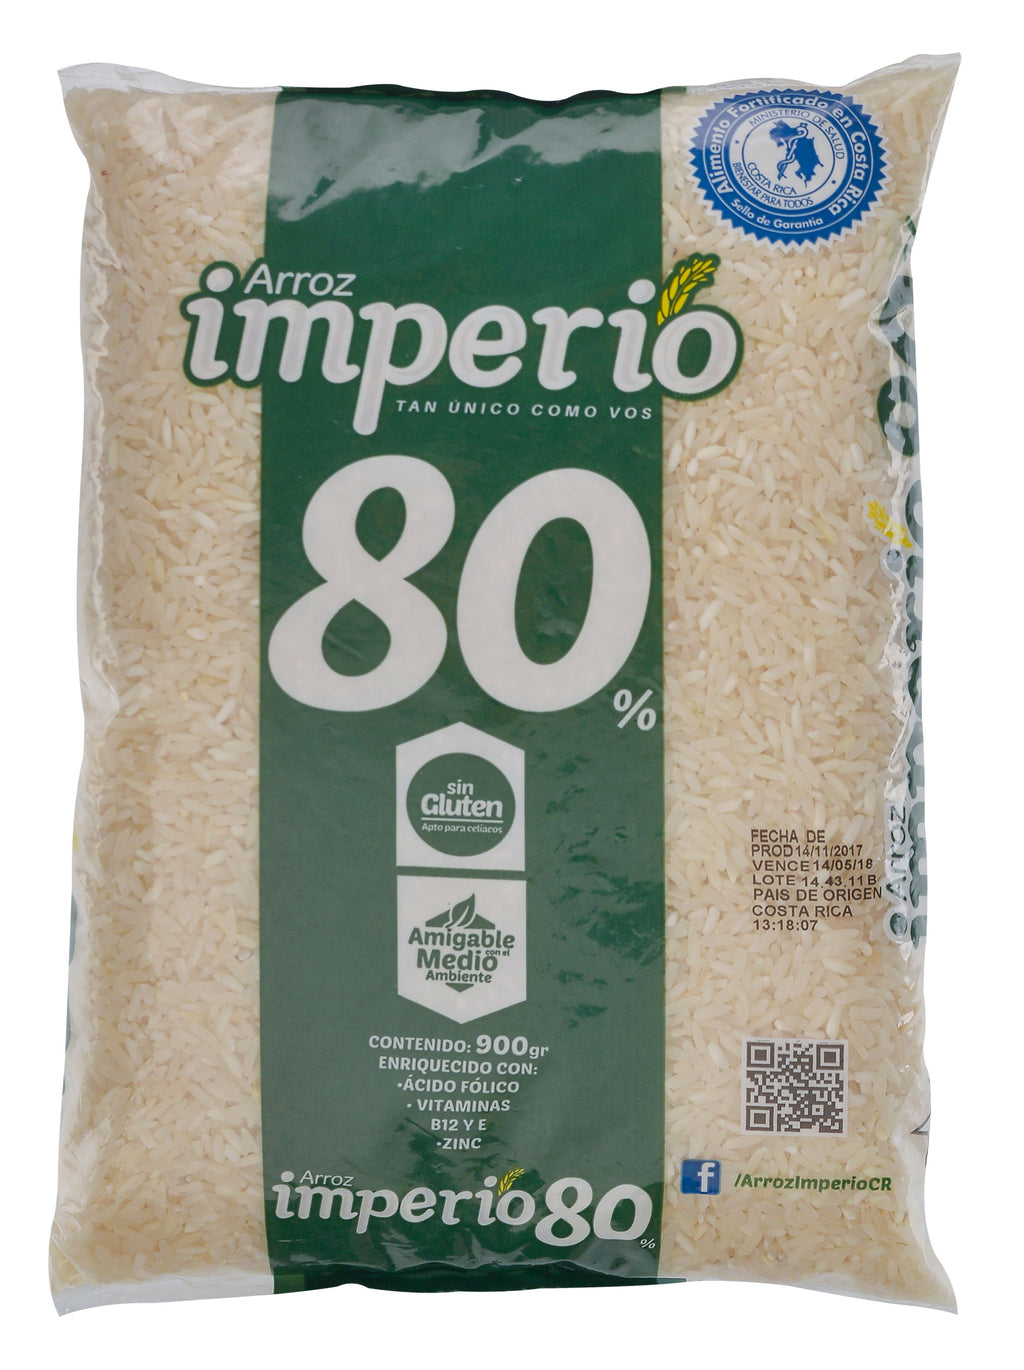 ARROZ IMPERIO 80% GRANO ENTERO